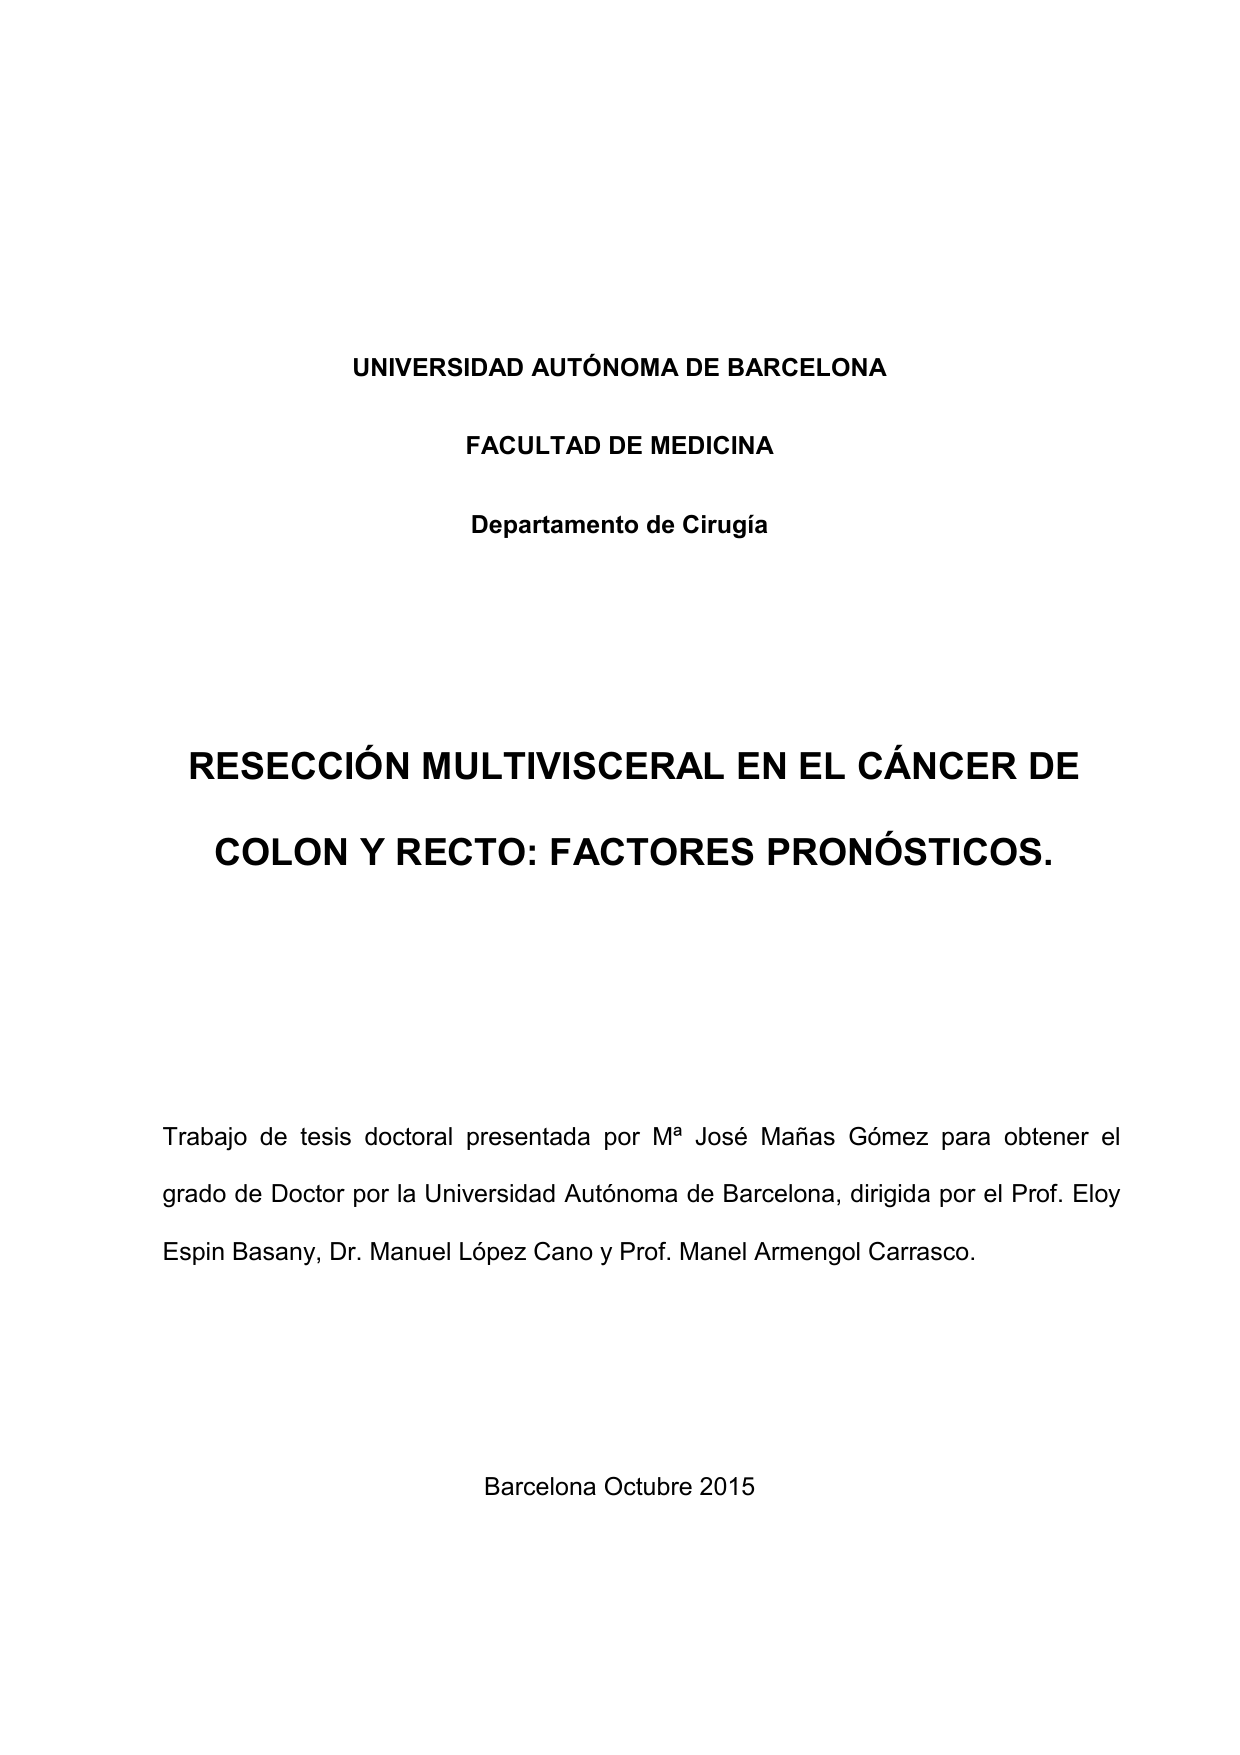 metastasis higado cancer de colon